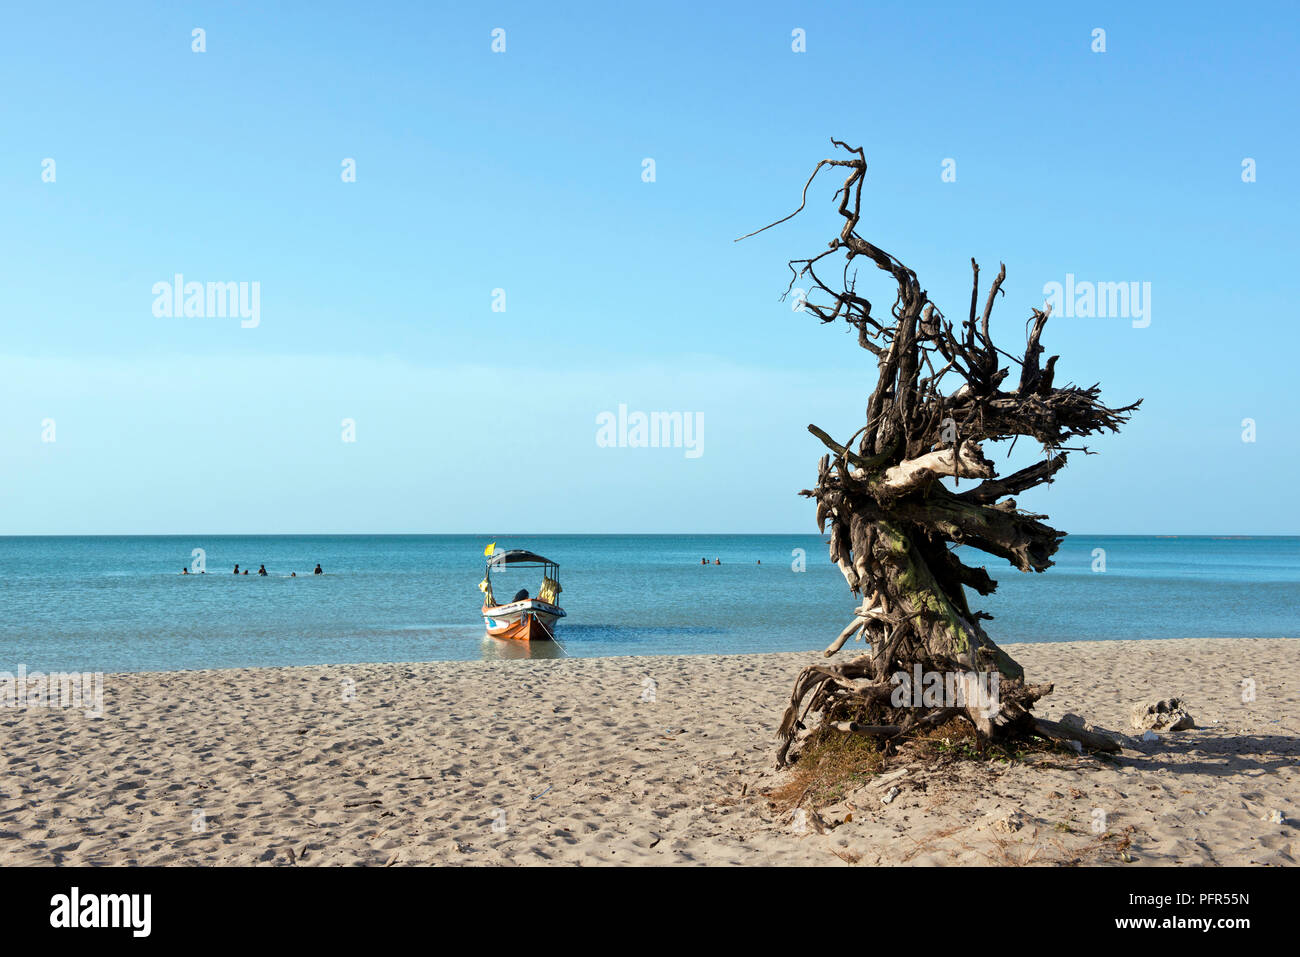 Sri Lanka, North Eastern Province, Jaffna, Casuarina Beach, dead tree on beach and boat in background - Stock Image